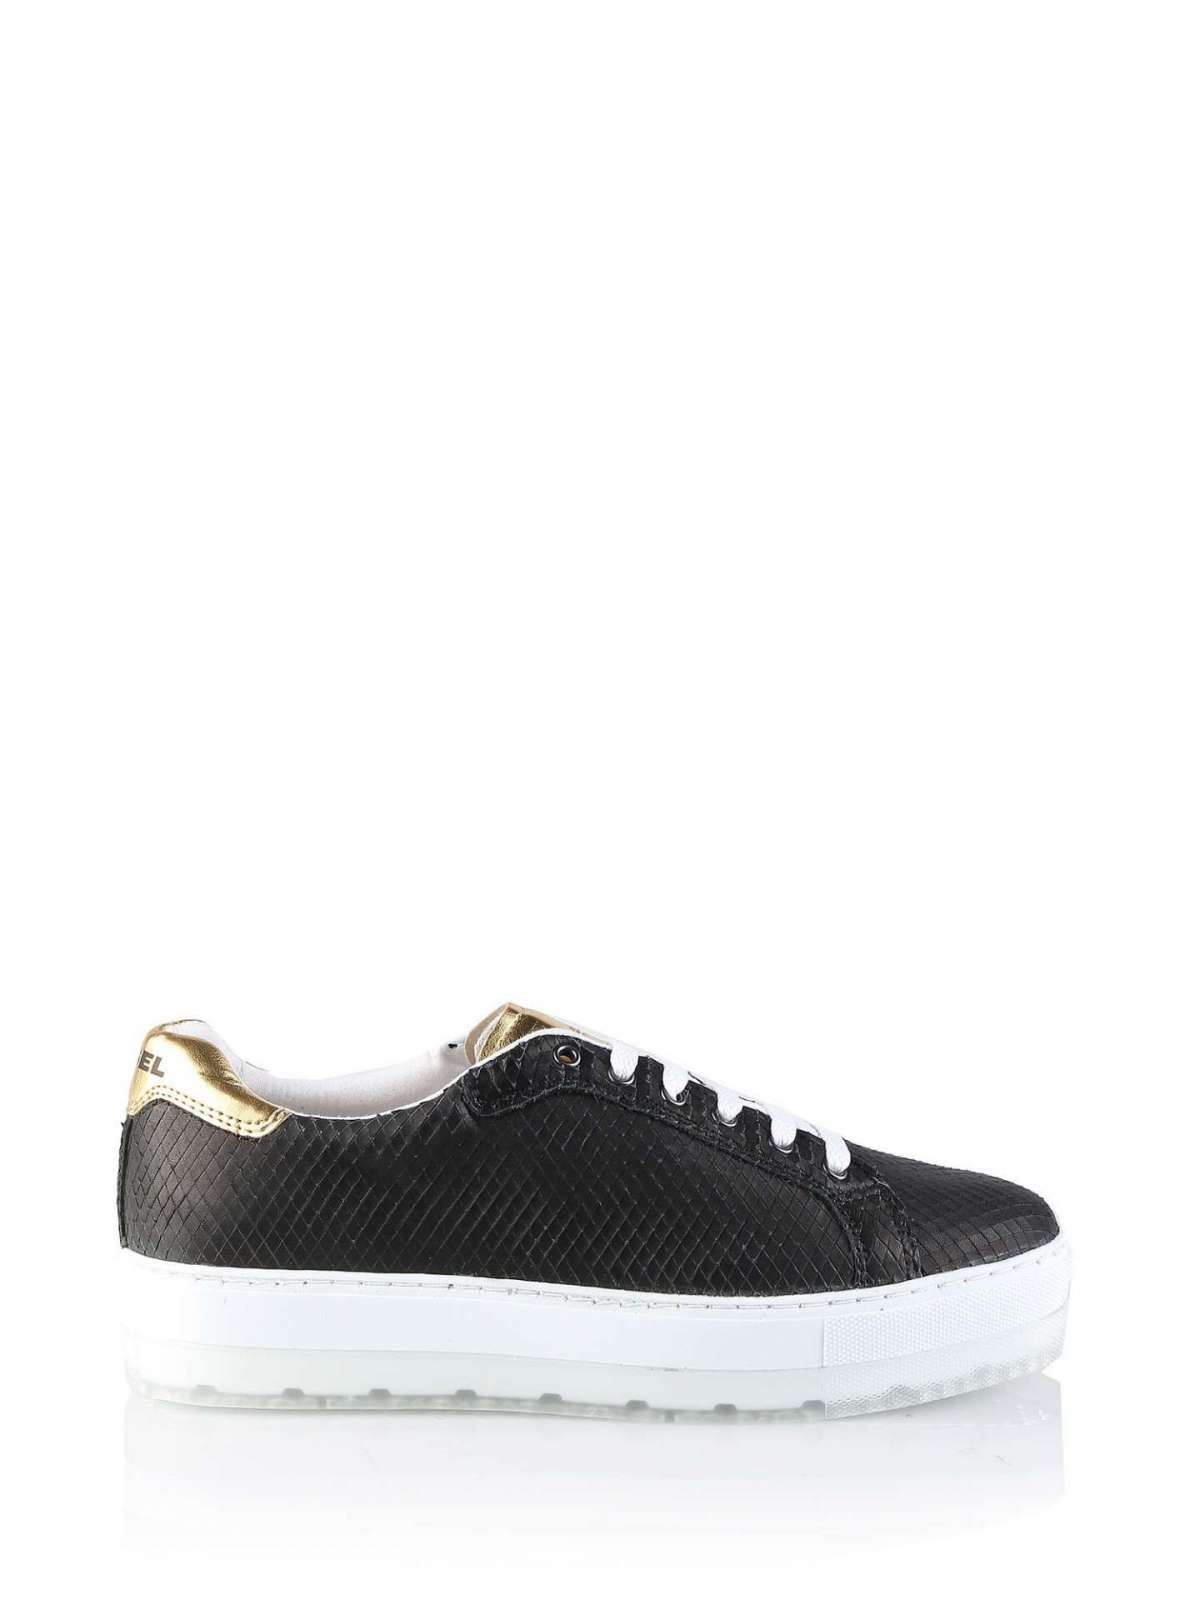 Sneakers nere basse